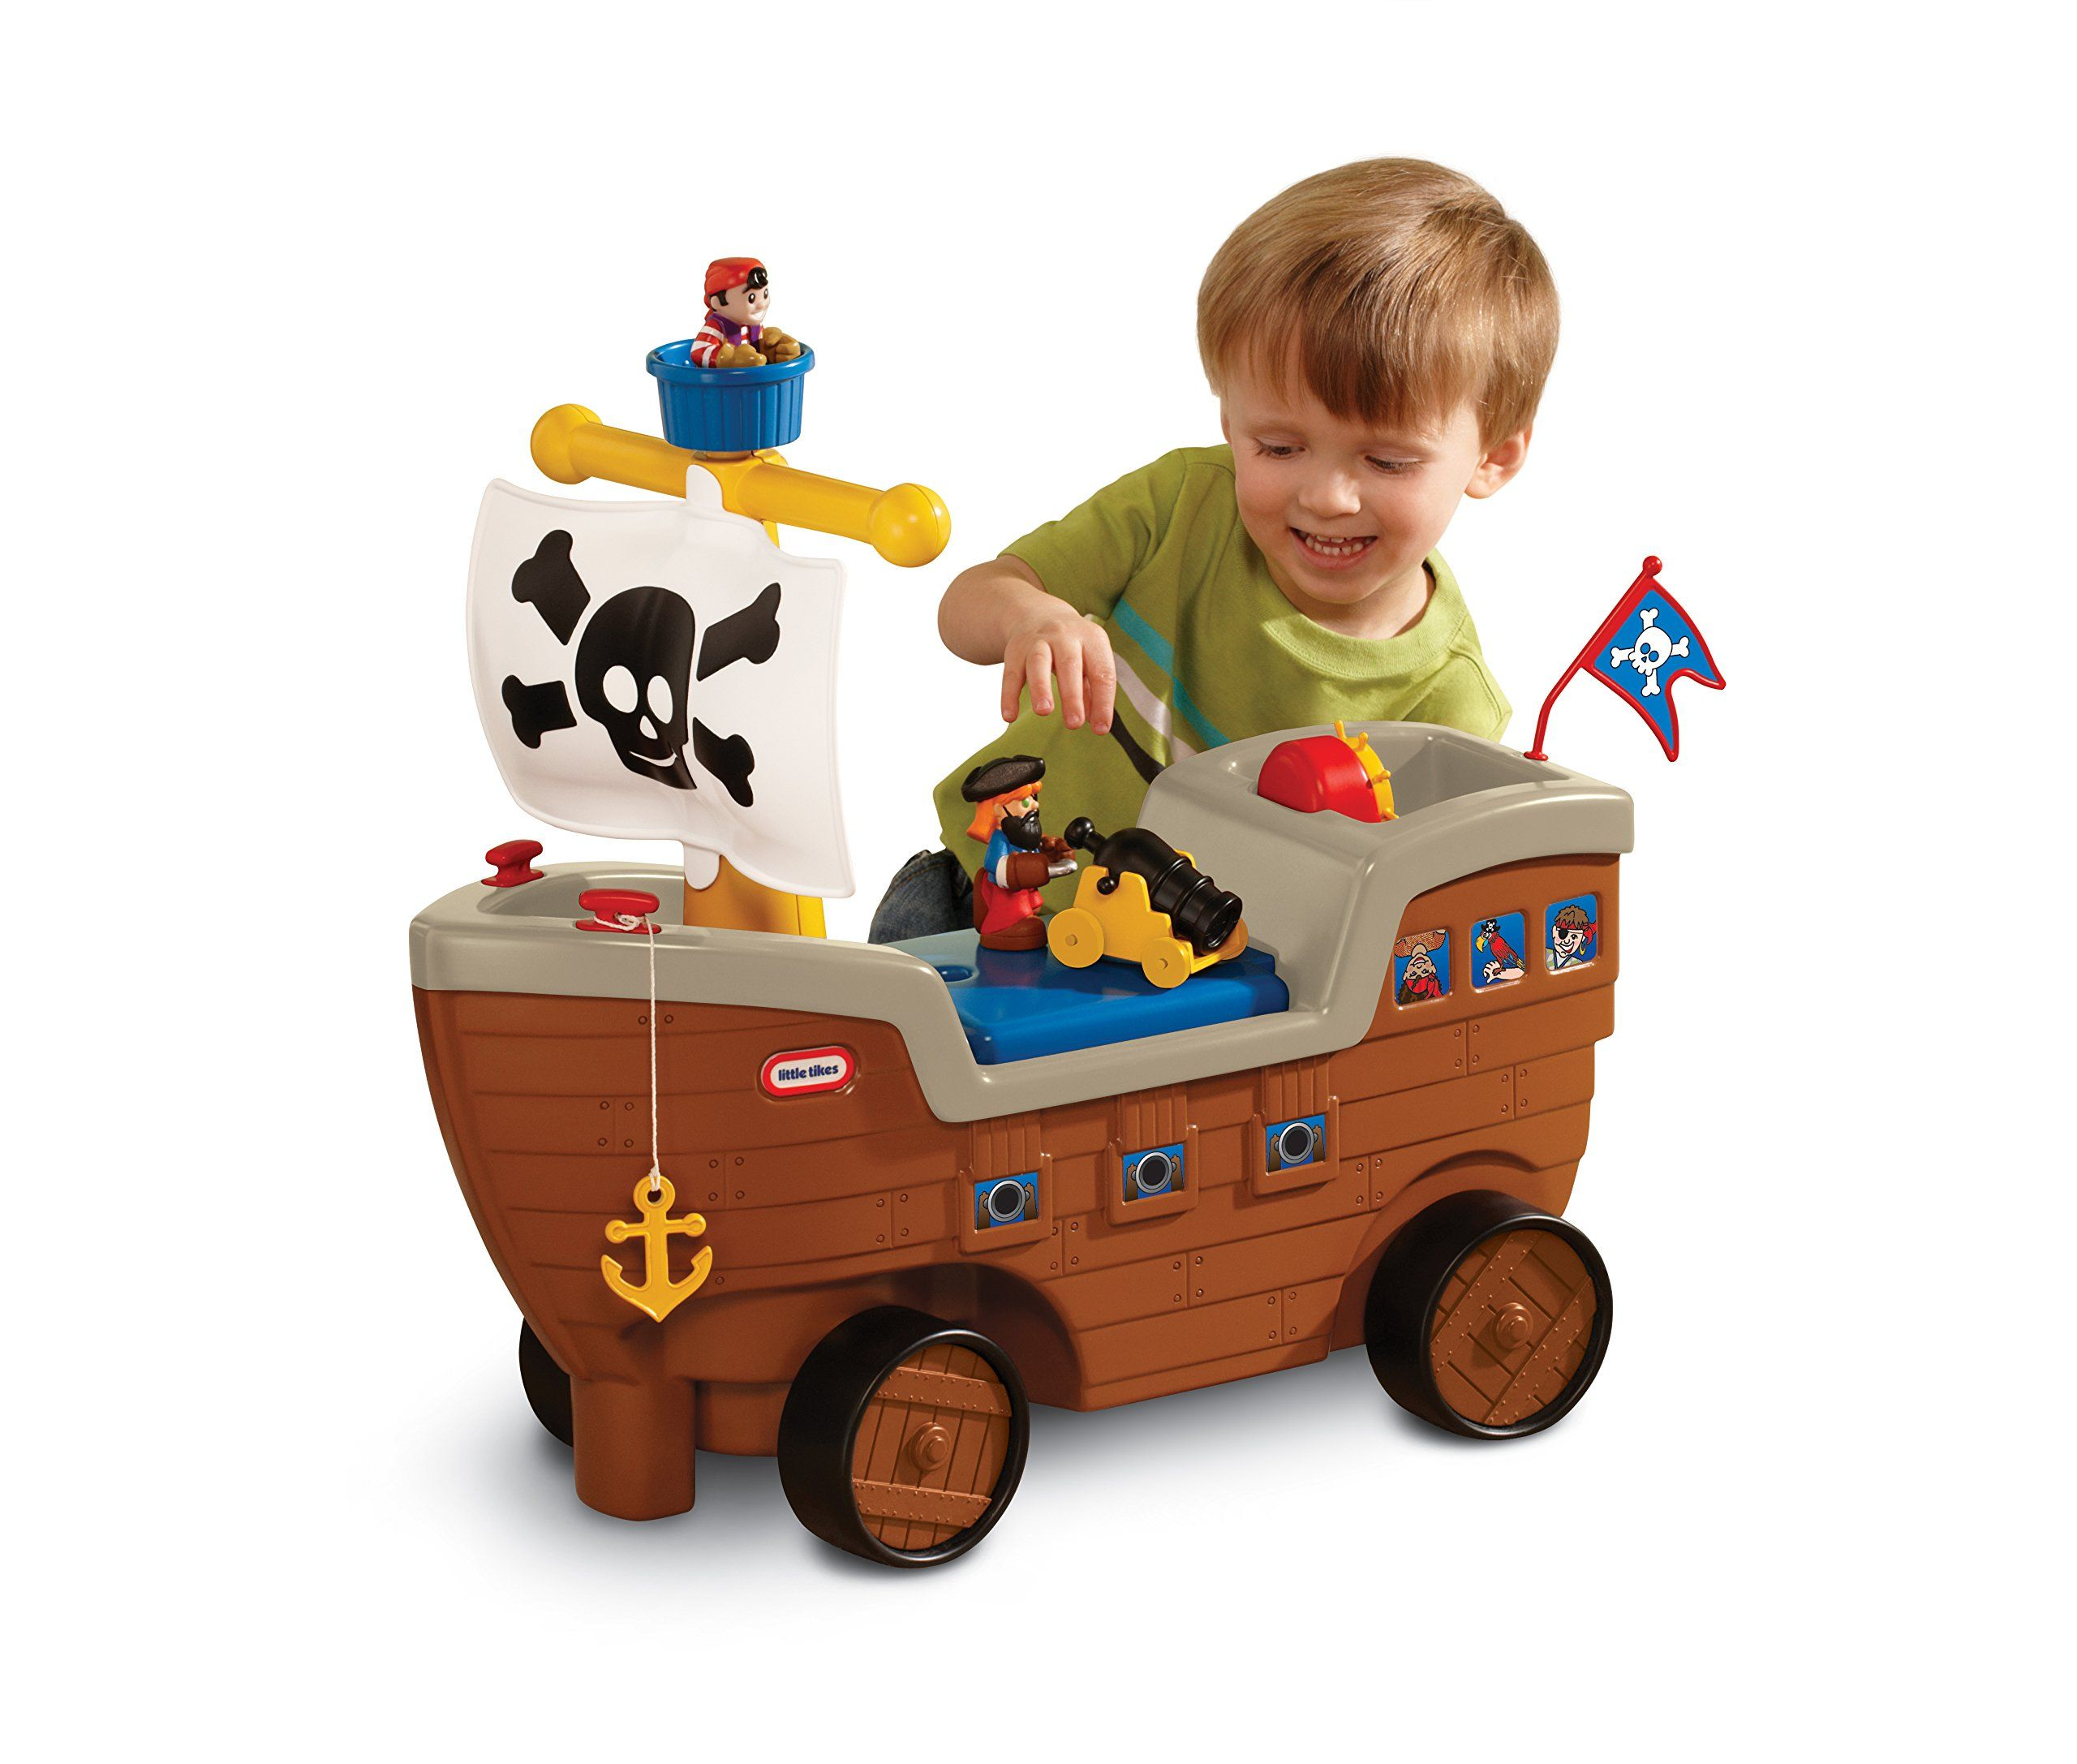 Little Tikes Play N Scoot Pirate Ship Korbs 1st bday